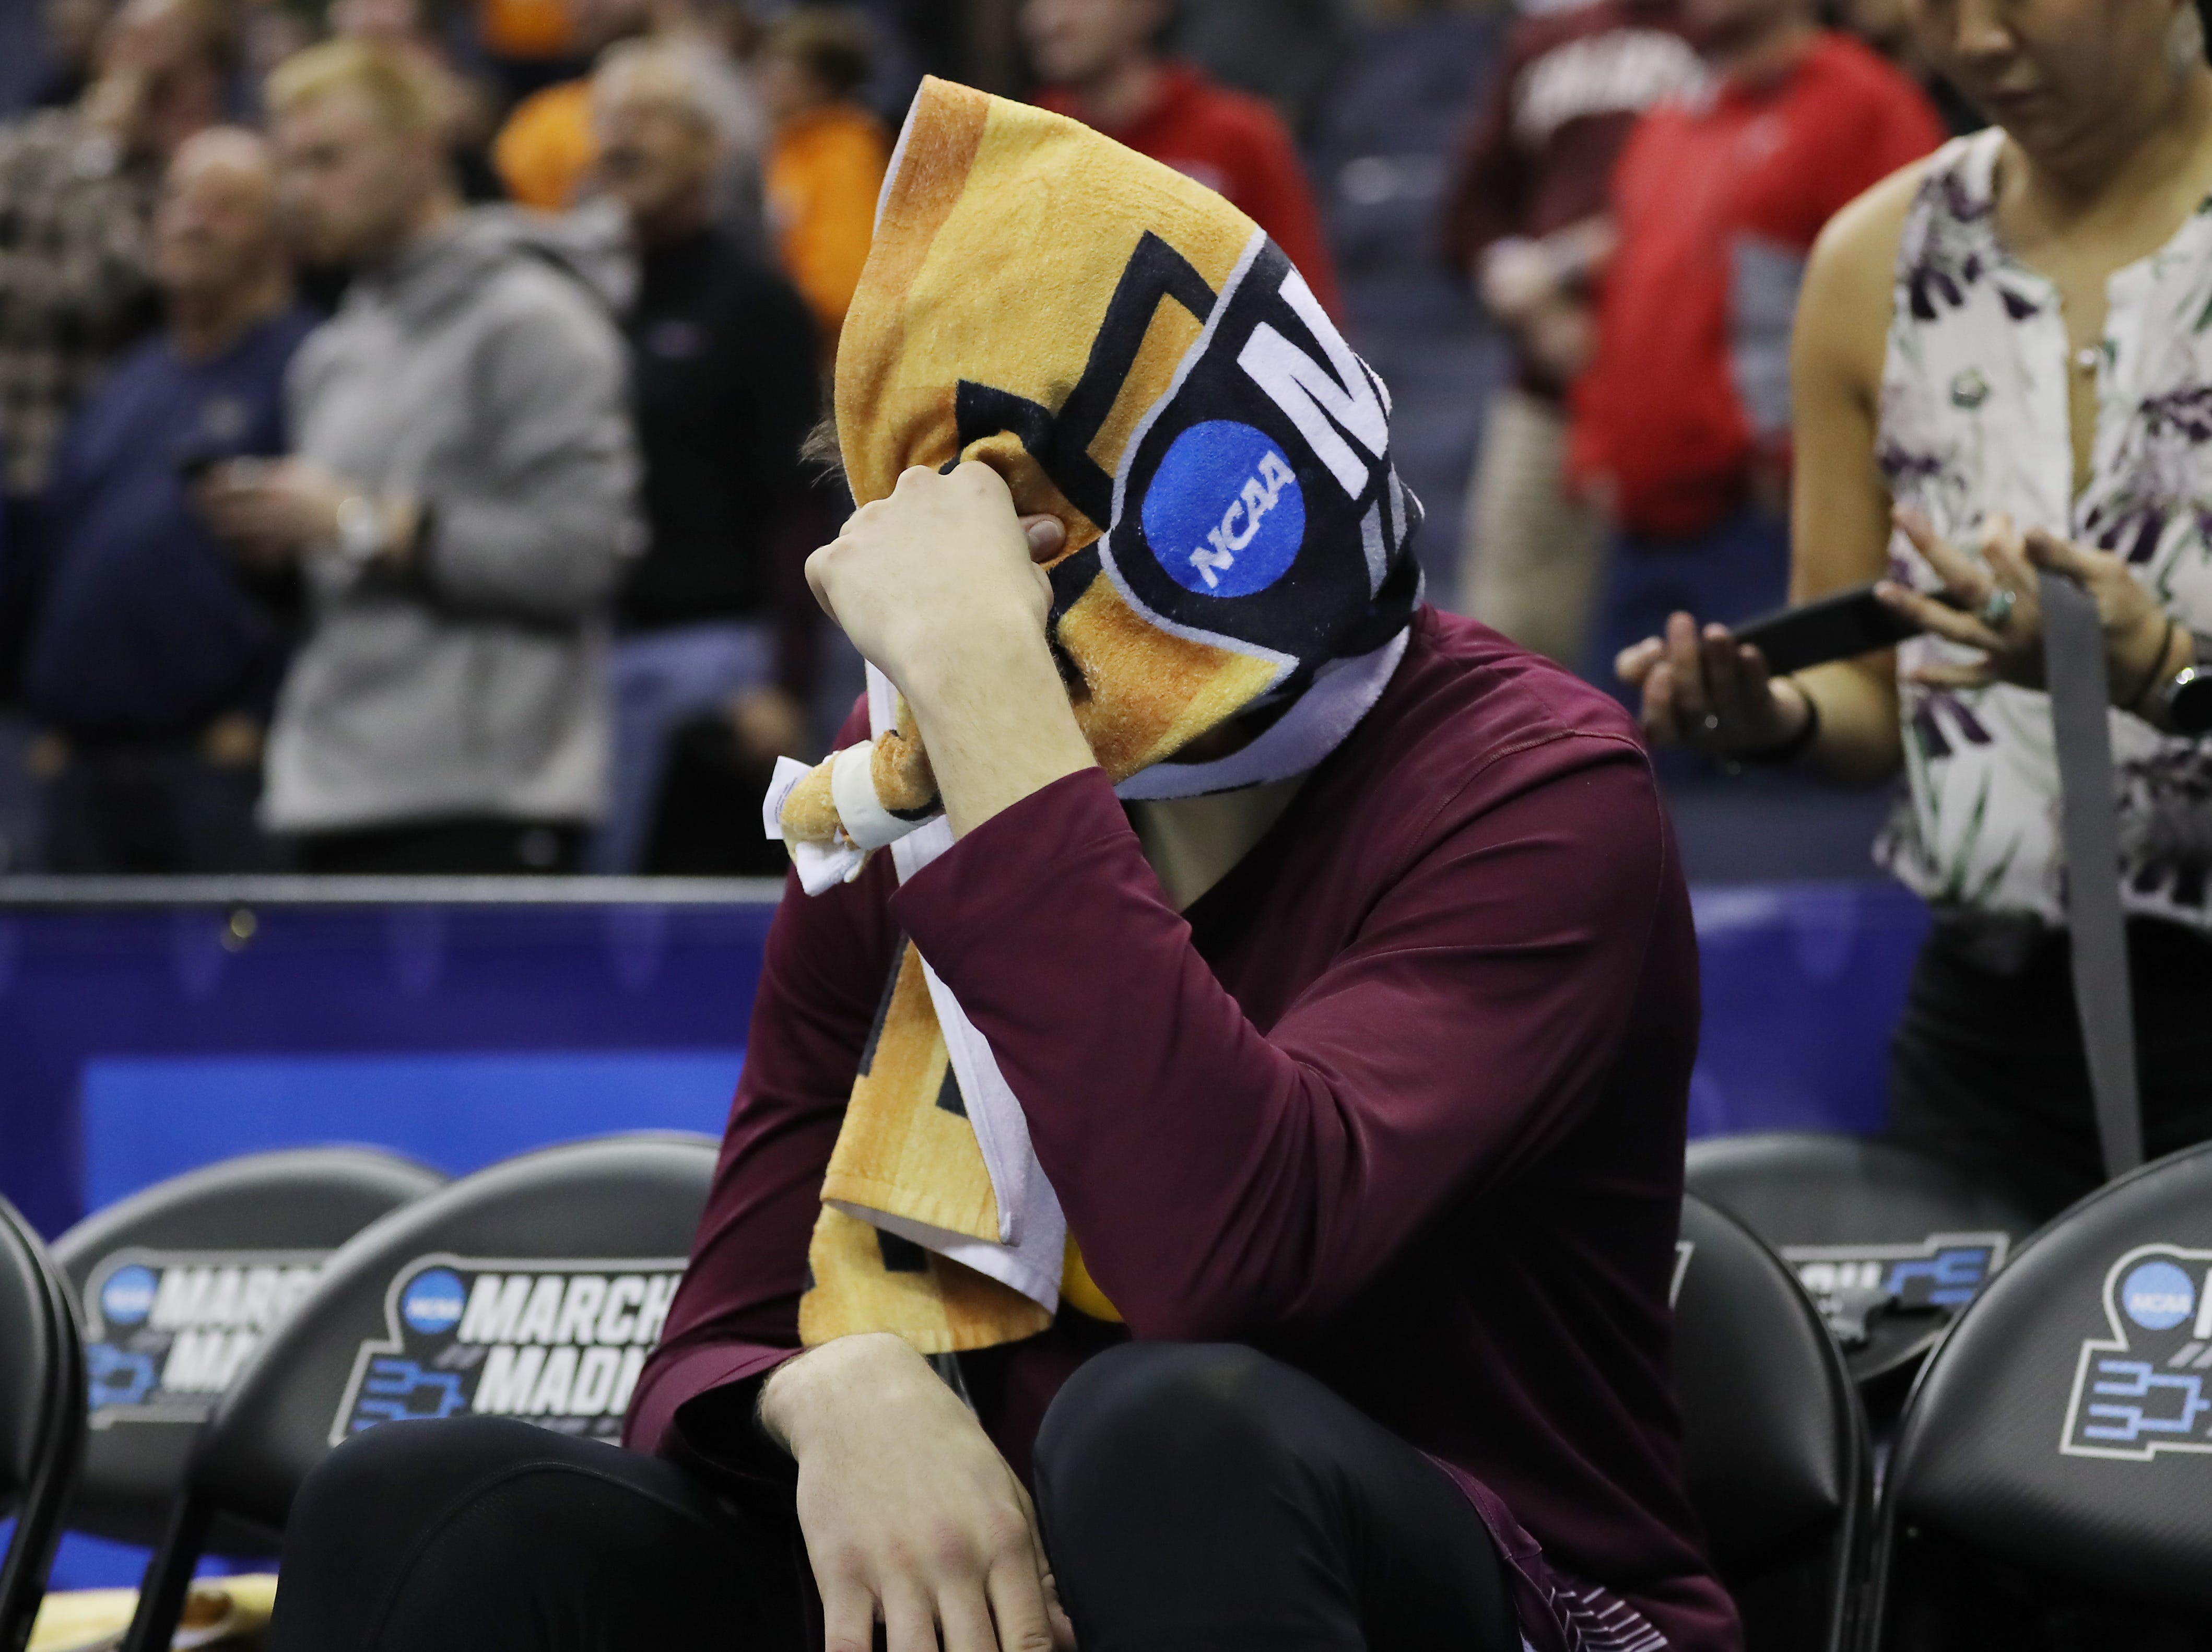 COLUMBUS, OHIO - MARCH 22: Rapolas Ivanauskas #25 of the Colgate Raiders reacts after being defeated by the Tennessee Volunteers 77-70 in the first round of the 2019 NCAA Men's Basketball Tournament at Nationwide Arena on March 22, 2019 in Columbus, Ohio. (Photo by Elsa/Getty Images)